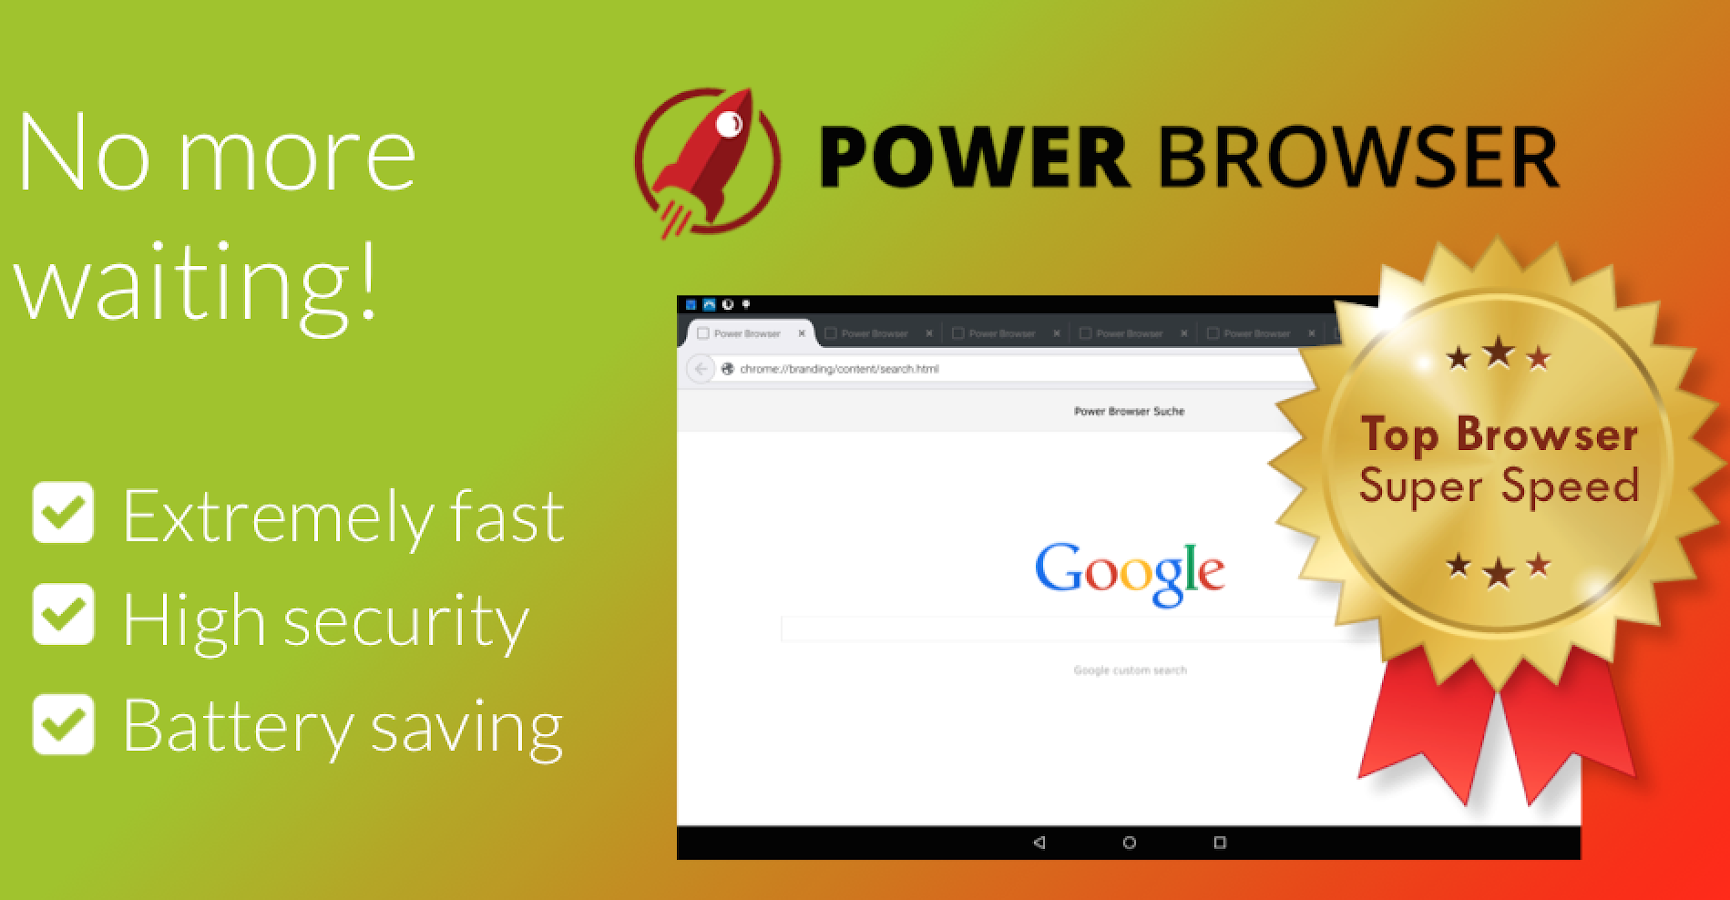 Power Browser